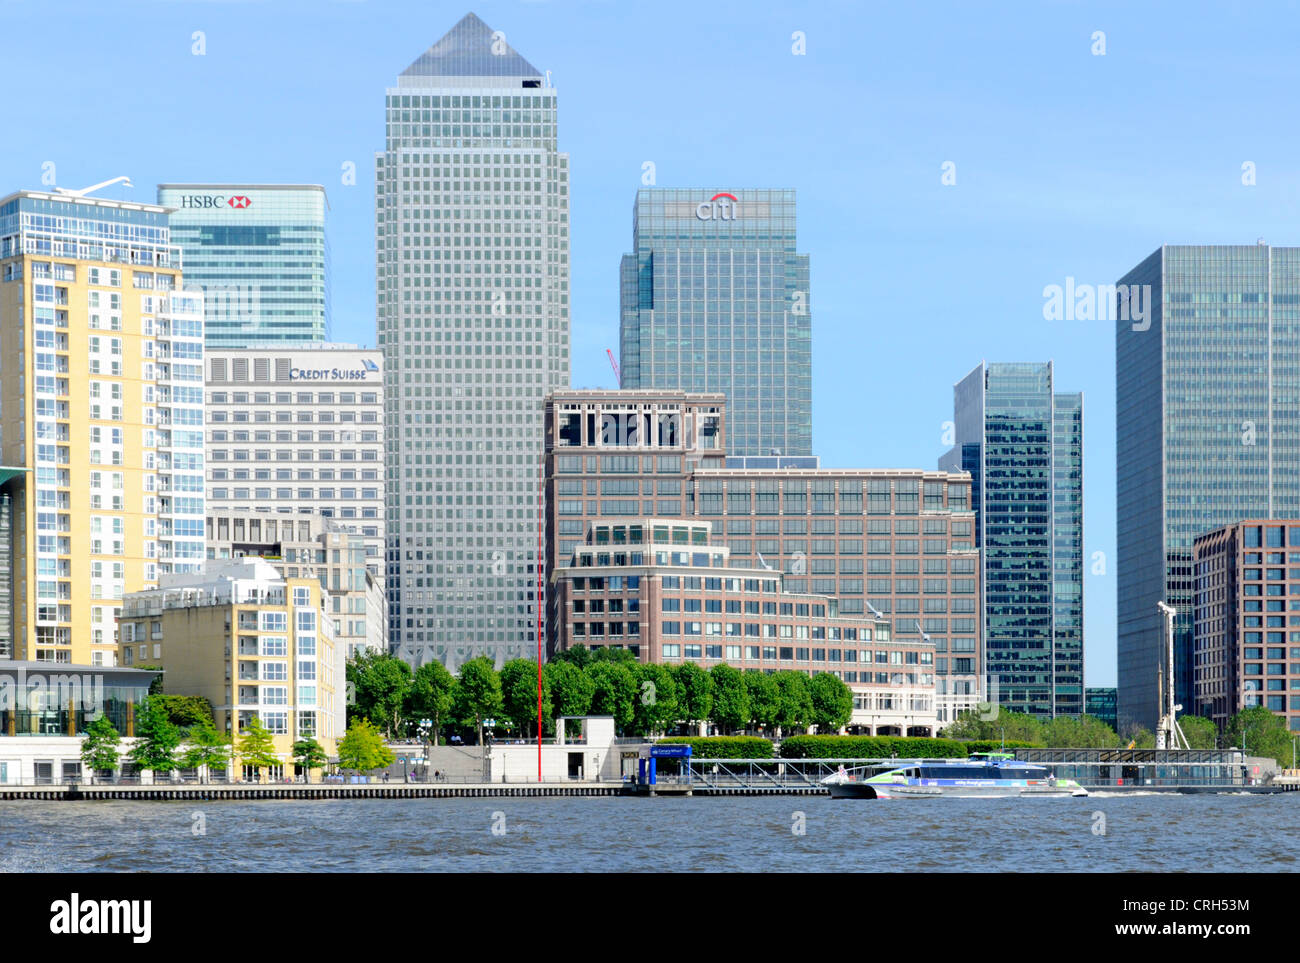 View across River Thames at high tide towards London Docklands Canary Wharf skyline - Stock Image